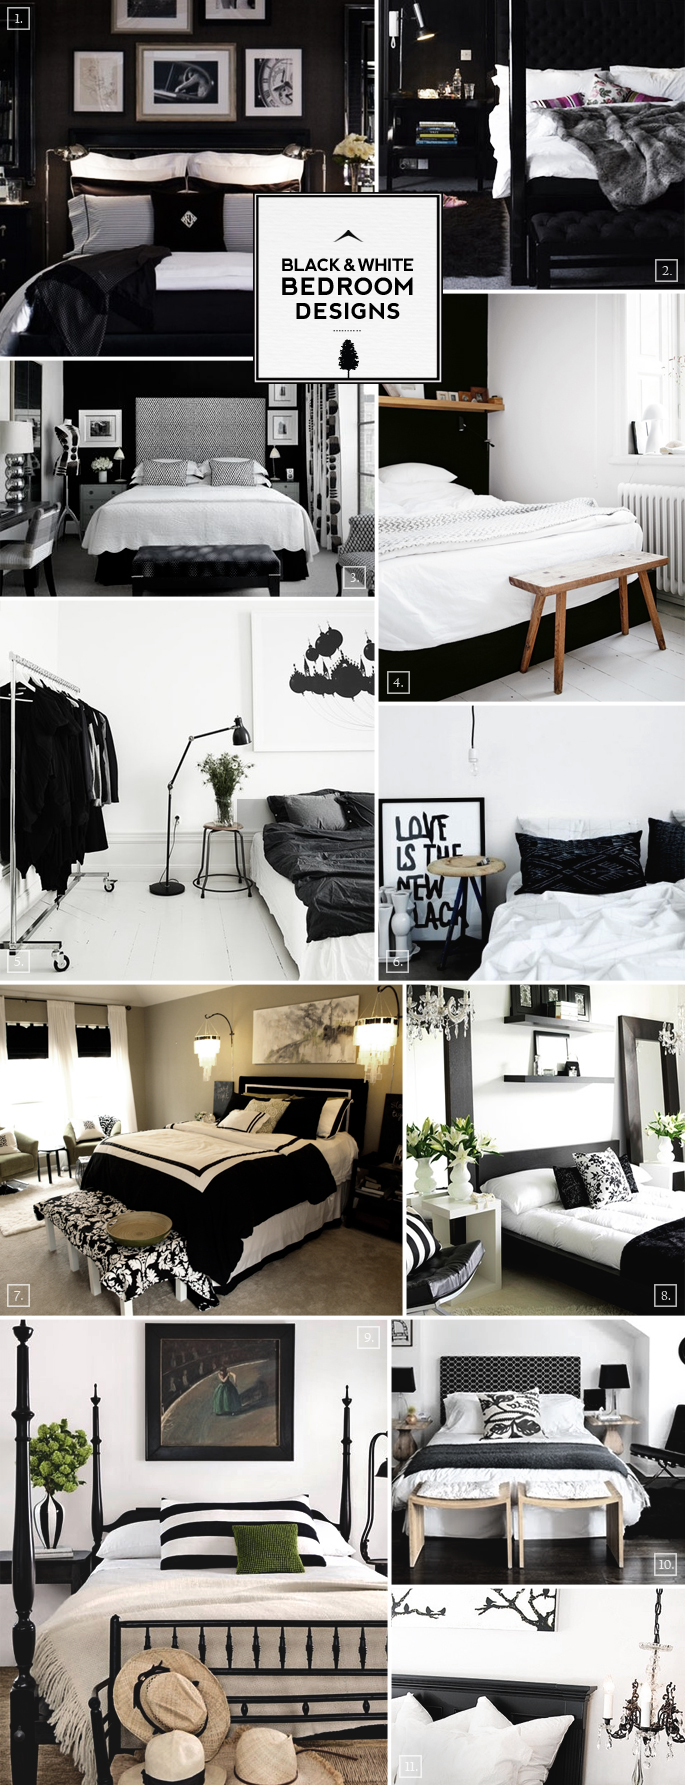 Black And White Bedroom Designs And Decor Ideas Home